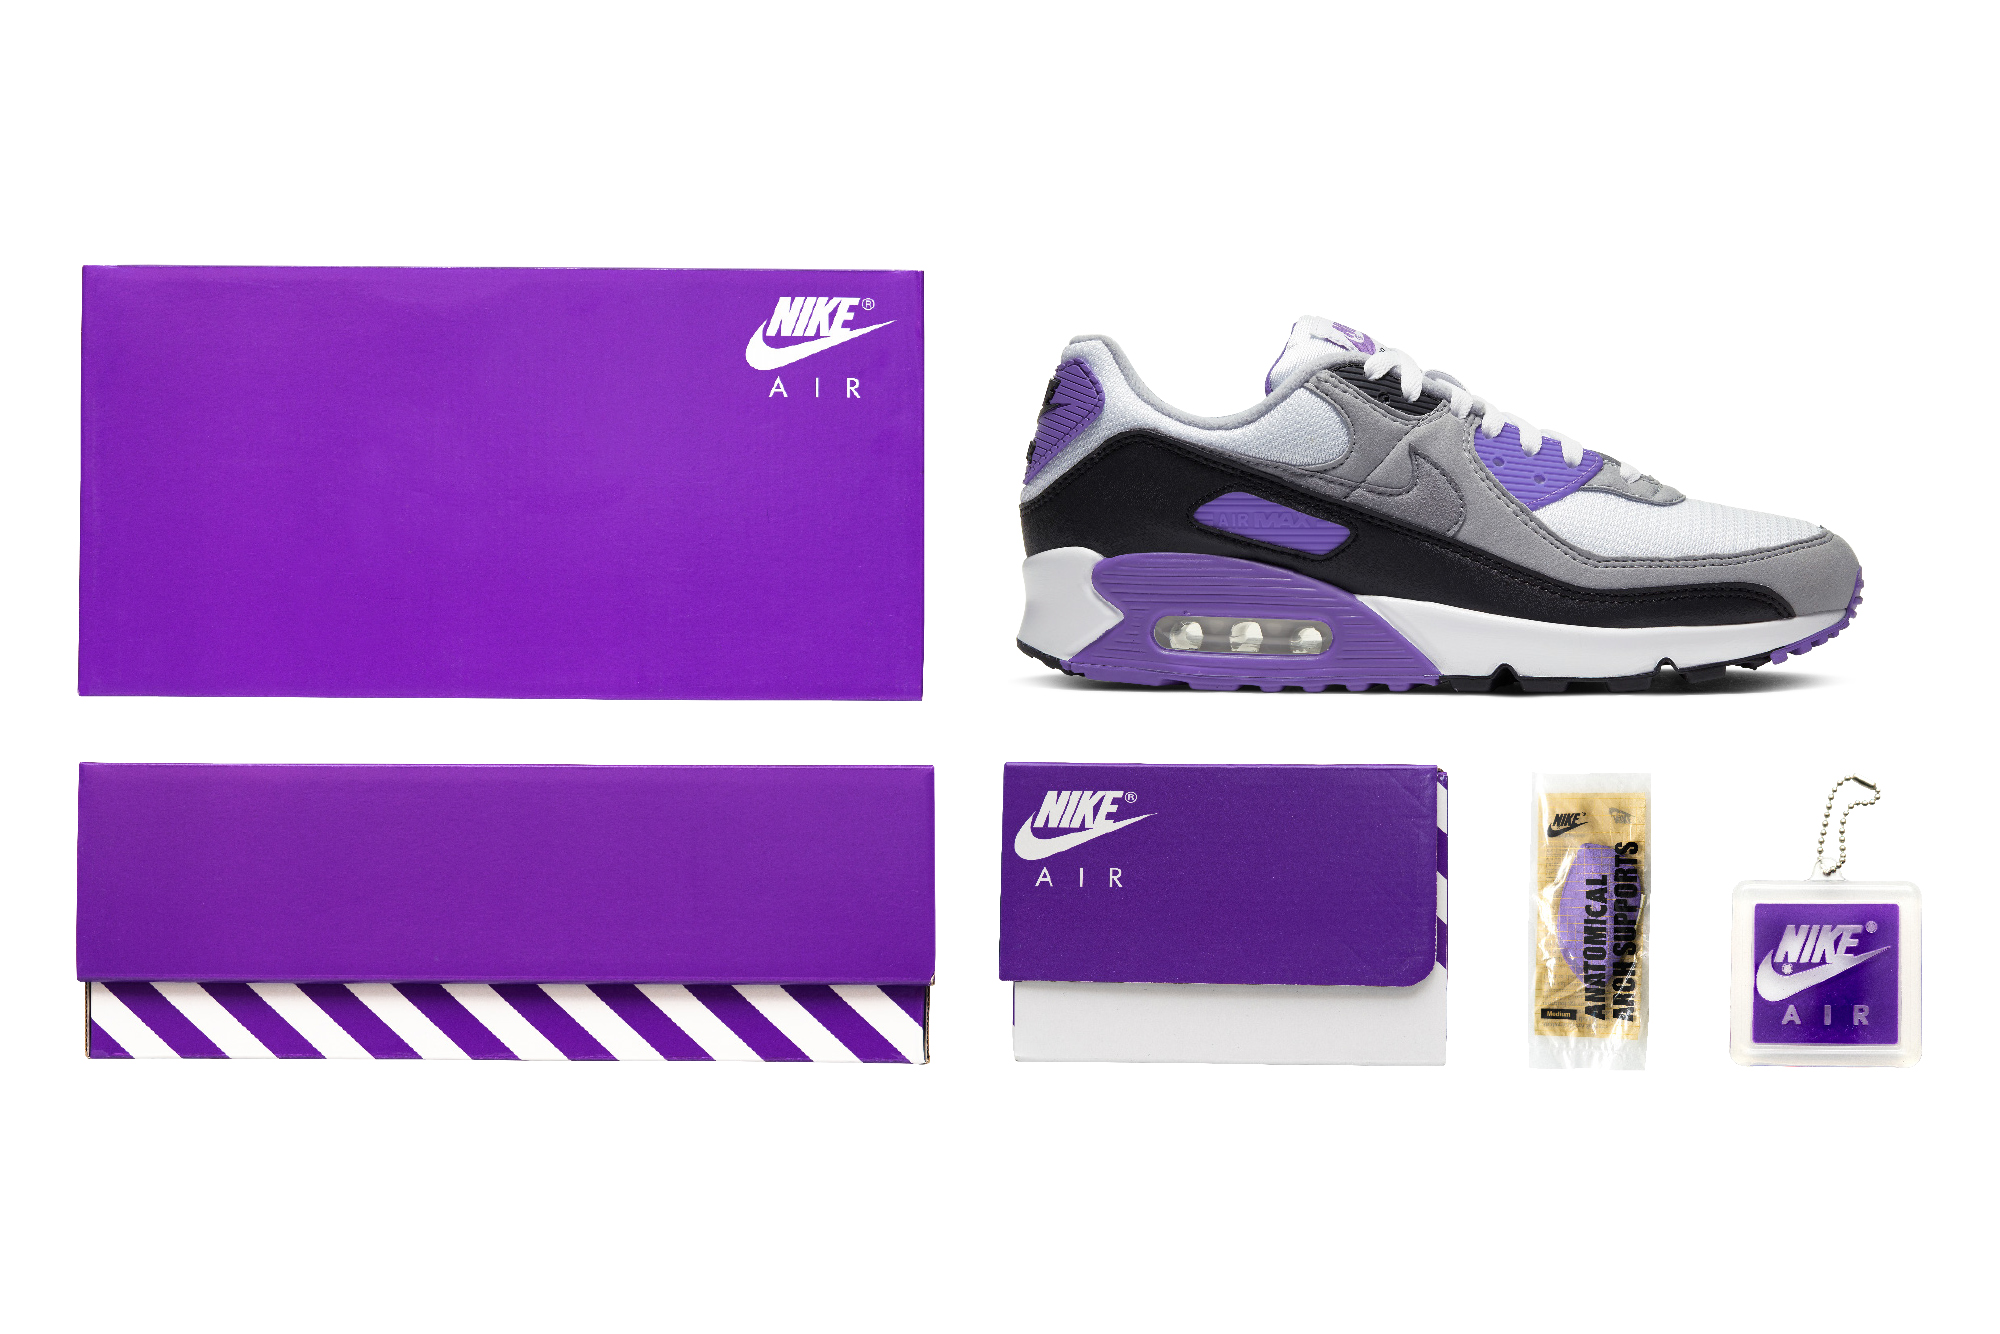 Air Max 90 Purple